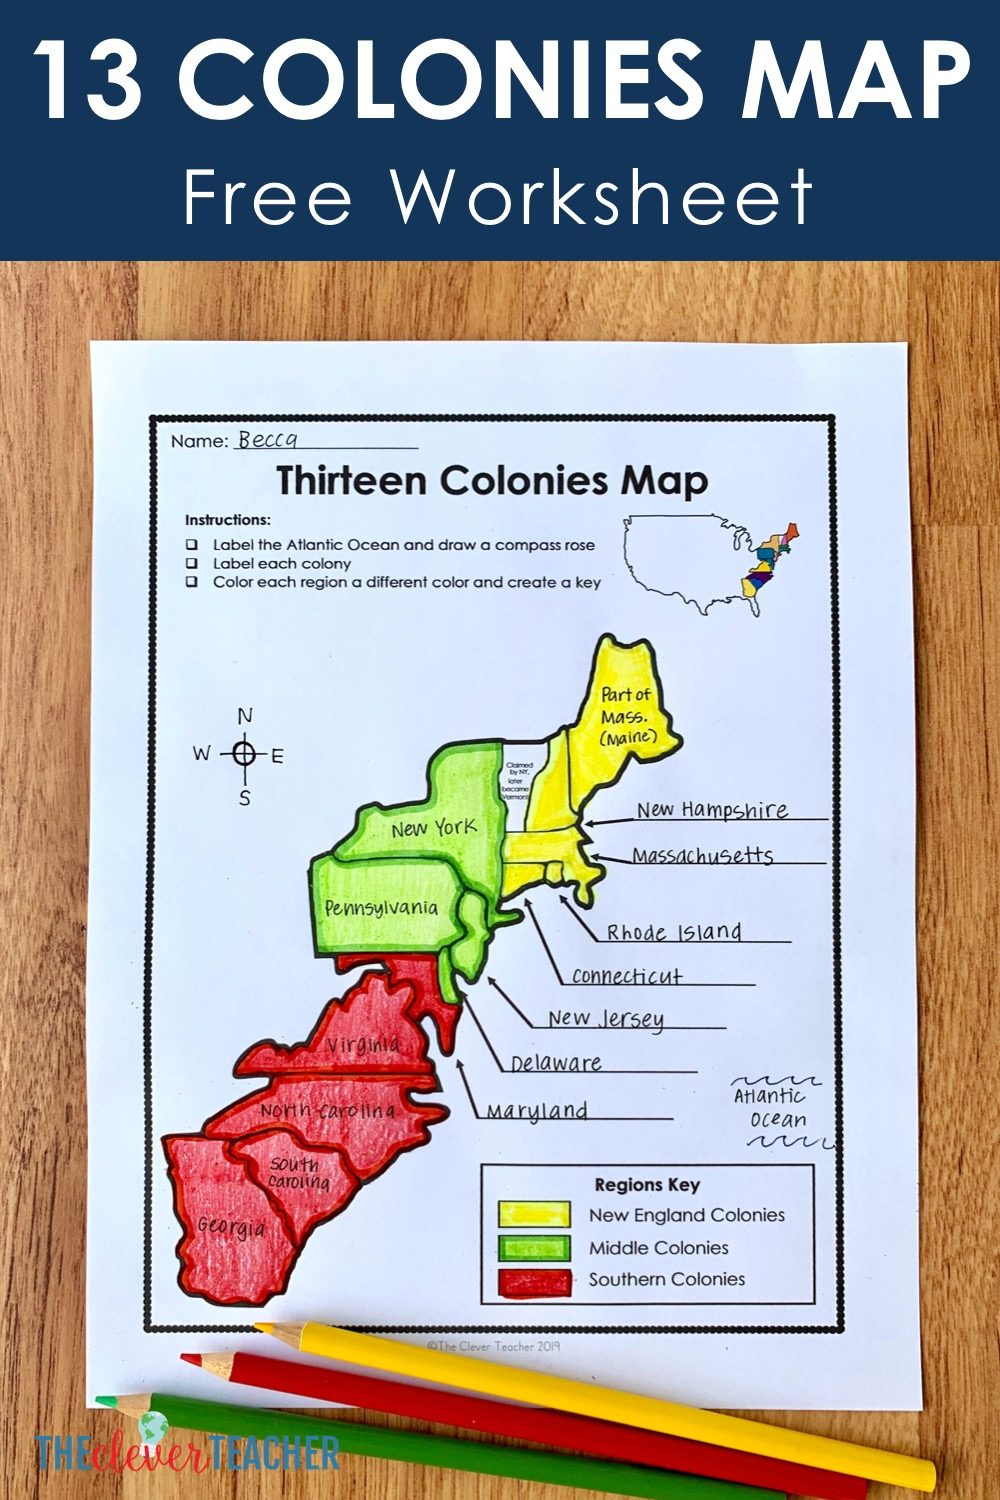 13 Colonies Free Map Worksheet and Lesson